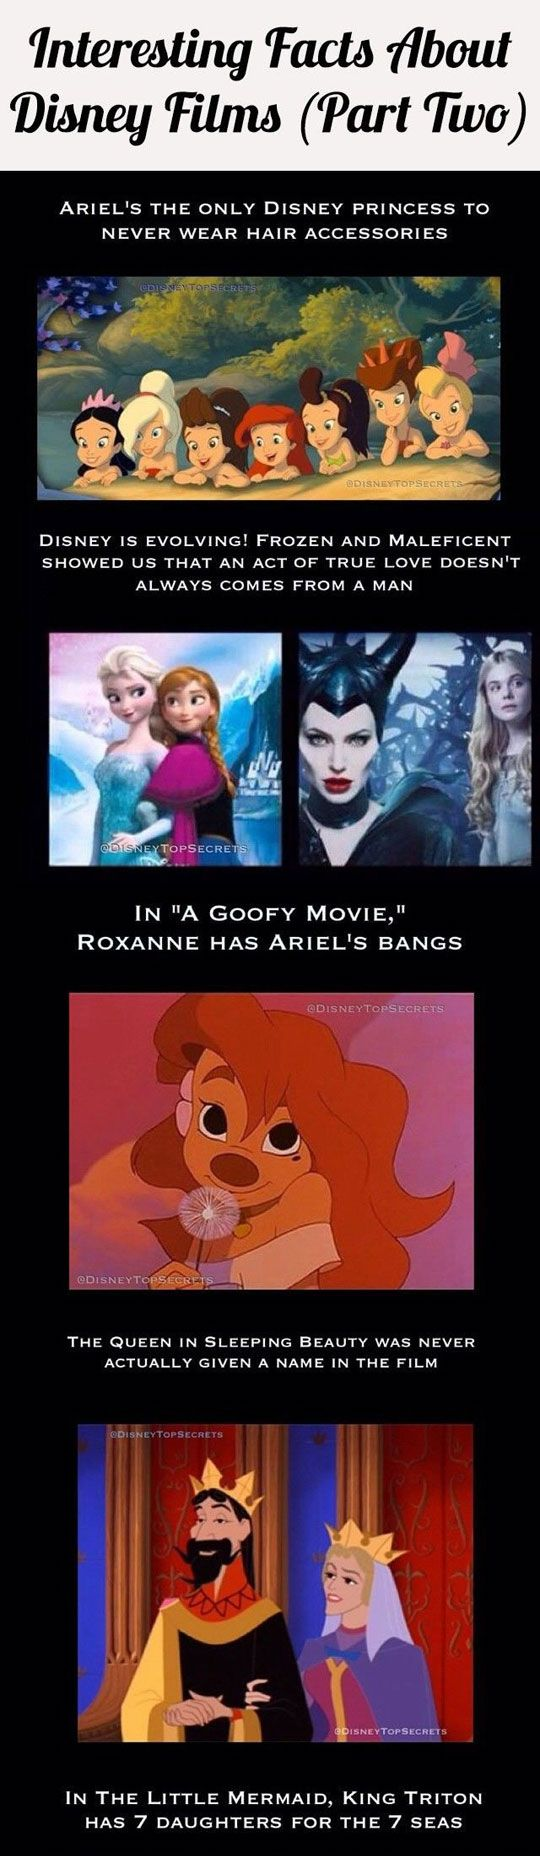 Interesting Disney Facts